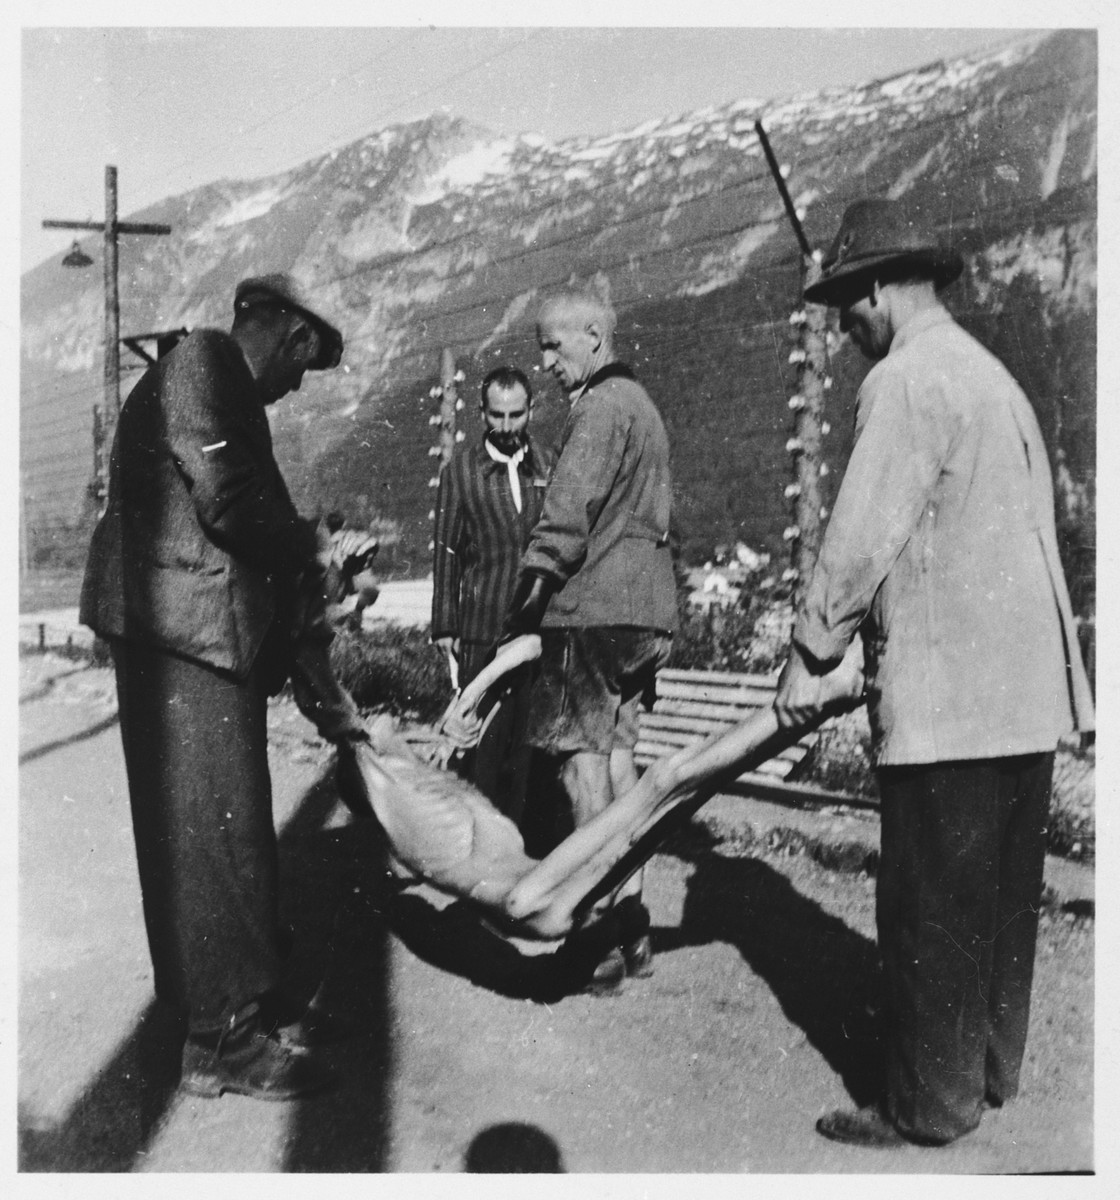 Austrian civilians remove corpses for burial after the liberation of the Ebensee concentration camp.